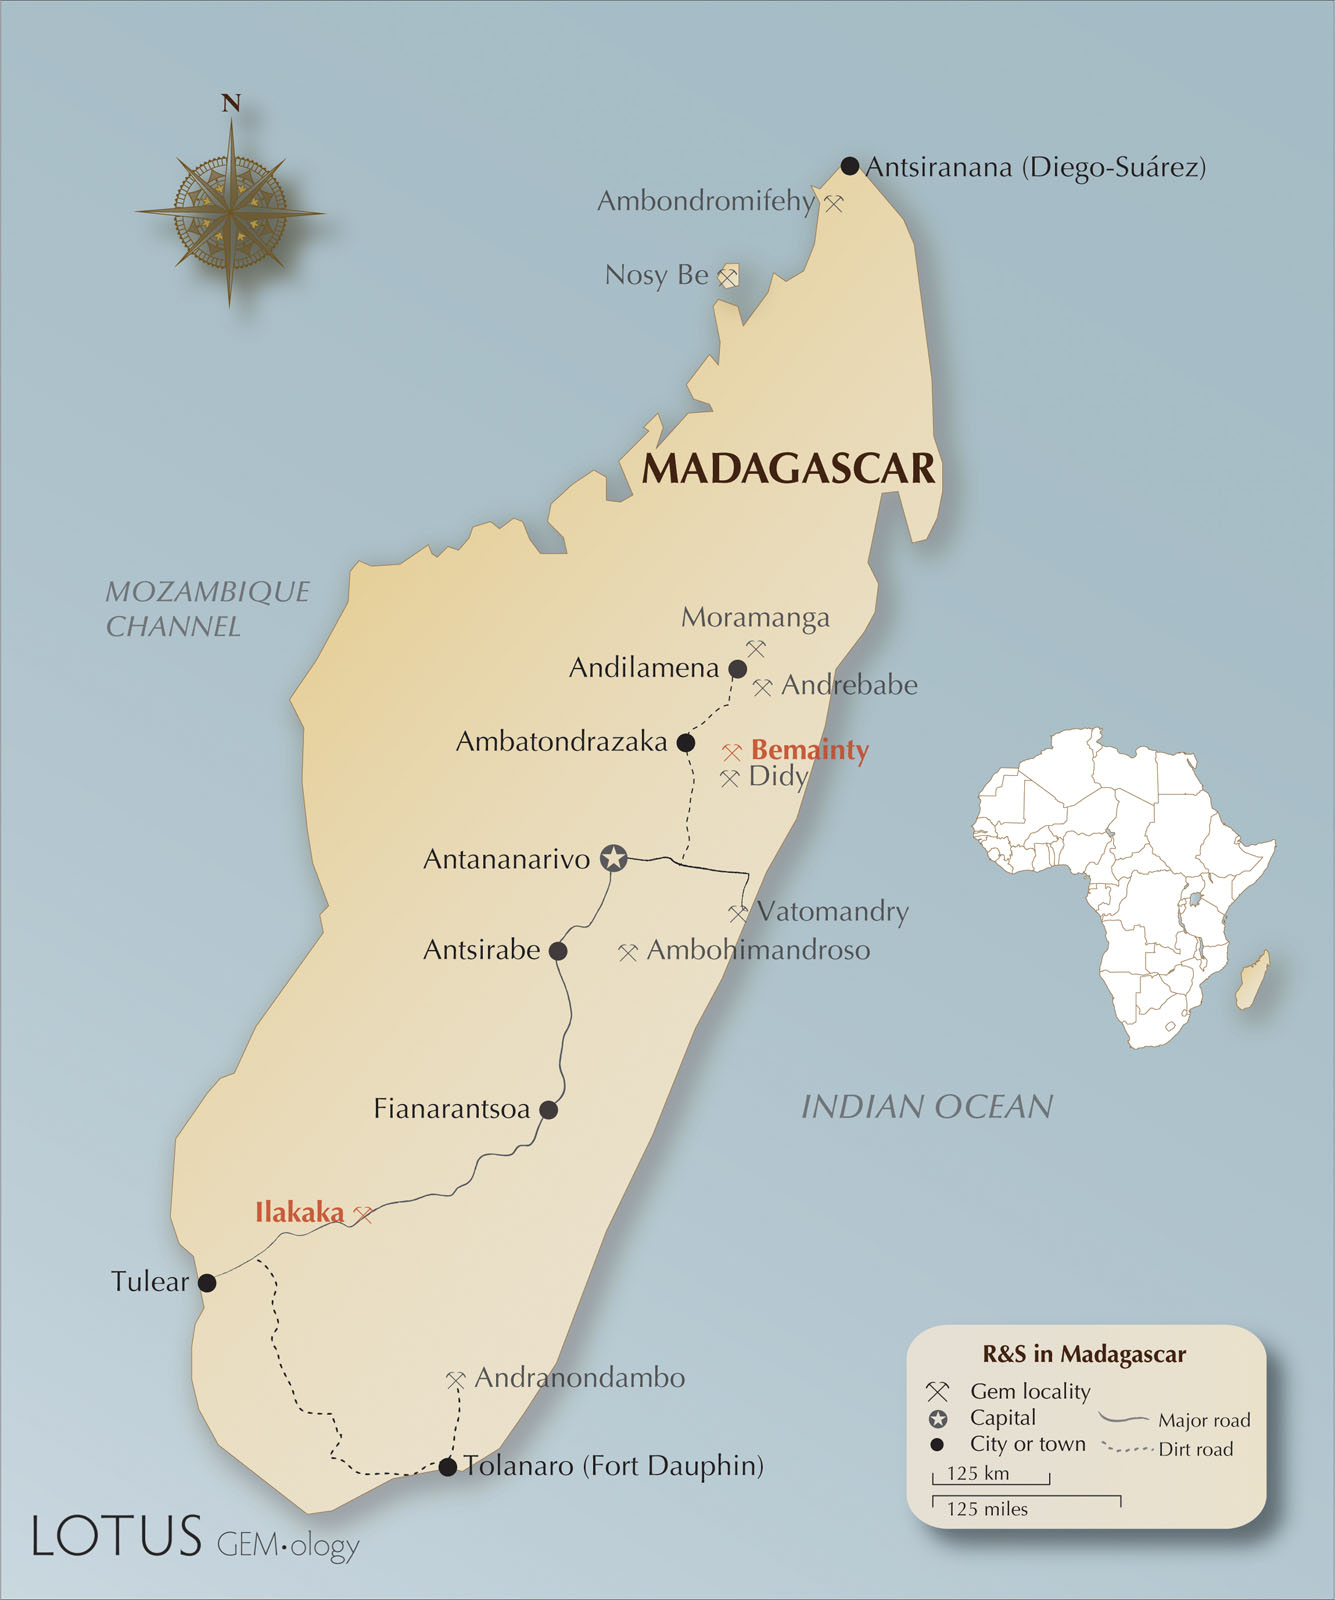 Map of Madagascar, including the most notable corundum localities. Ilakaka, Bemainty, and Andranondambo, the sources of samples used in this experiment, are highlighted in red. Maps by Richard Hughes.